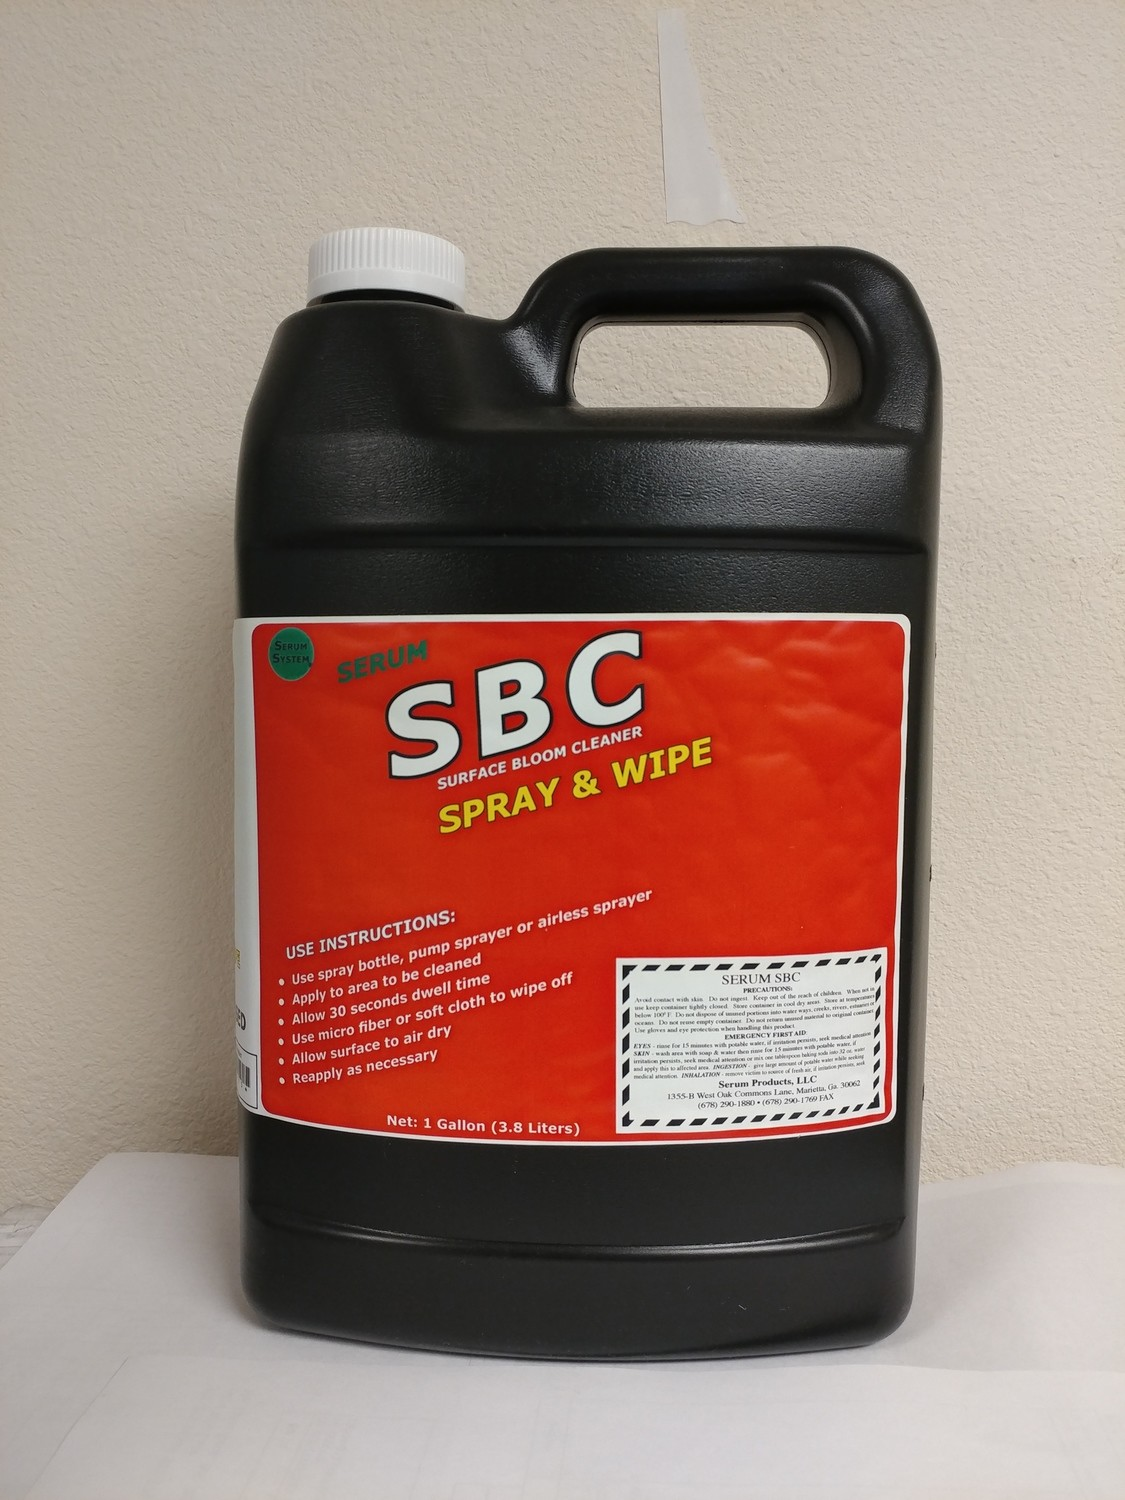 Serum SBC (Surface Mold Cleaner) Spray & Wipe, Gl